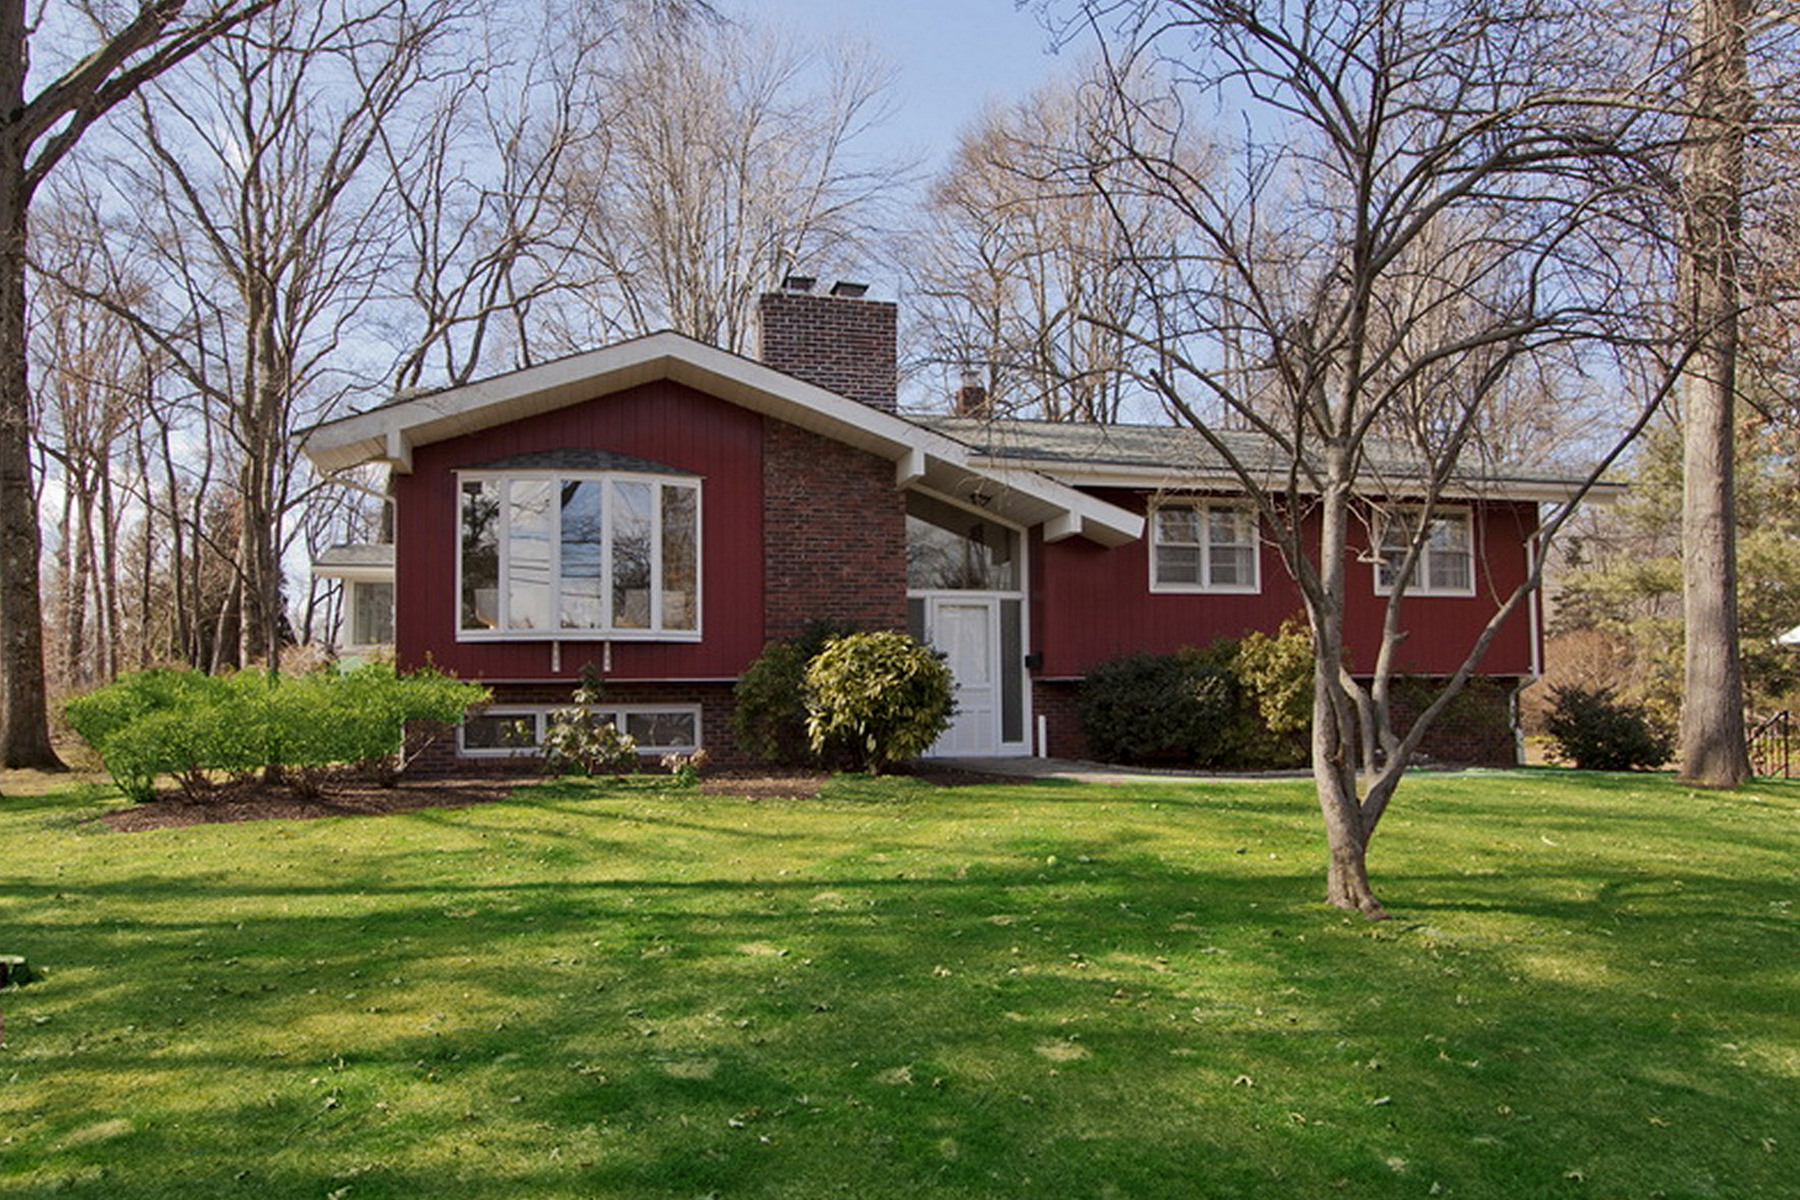 Single Family Home for Sale at Welcome Home! 179 Chestnut St, Demarest, New Jersey 07627 United States